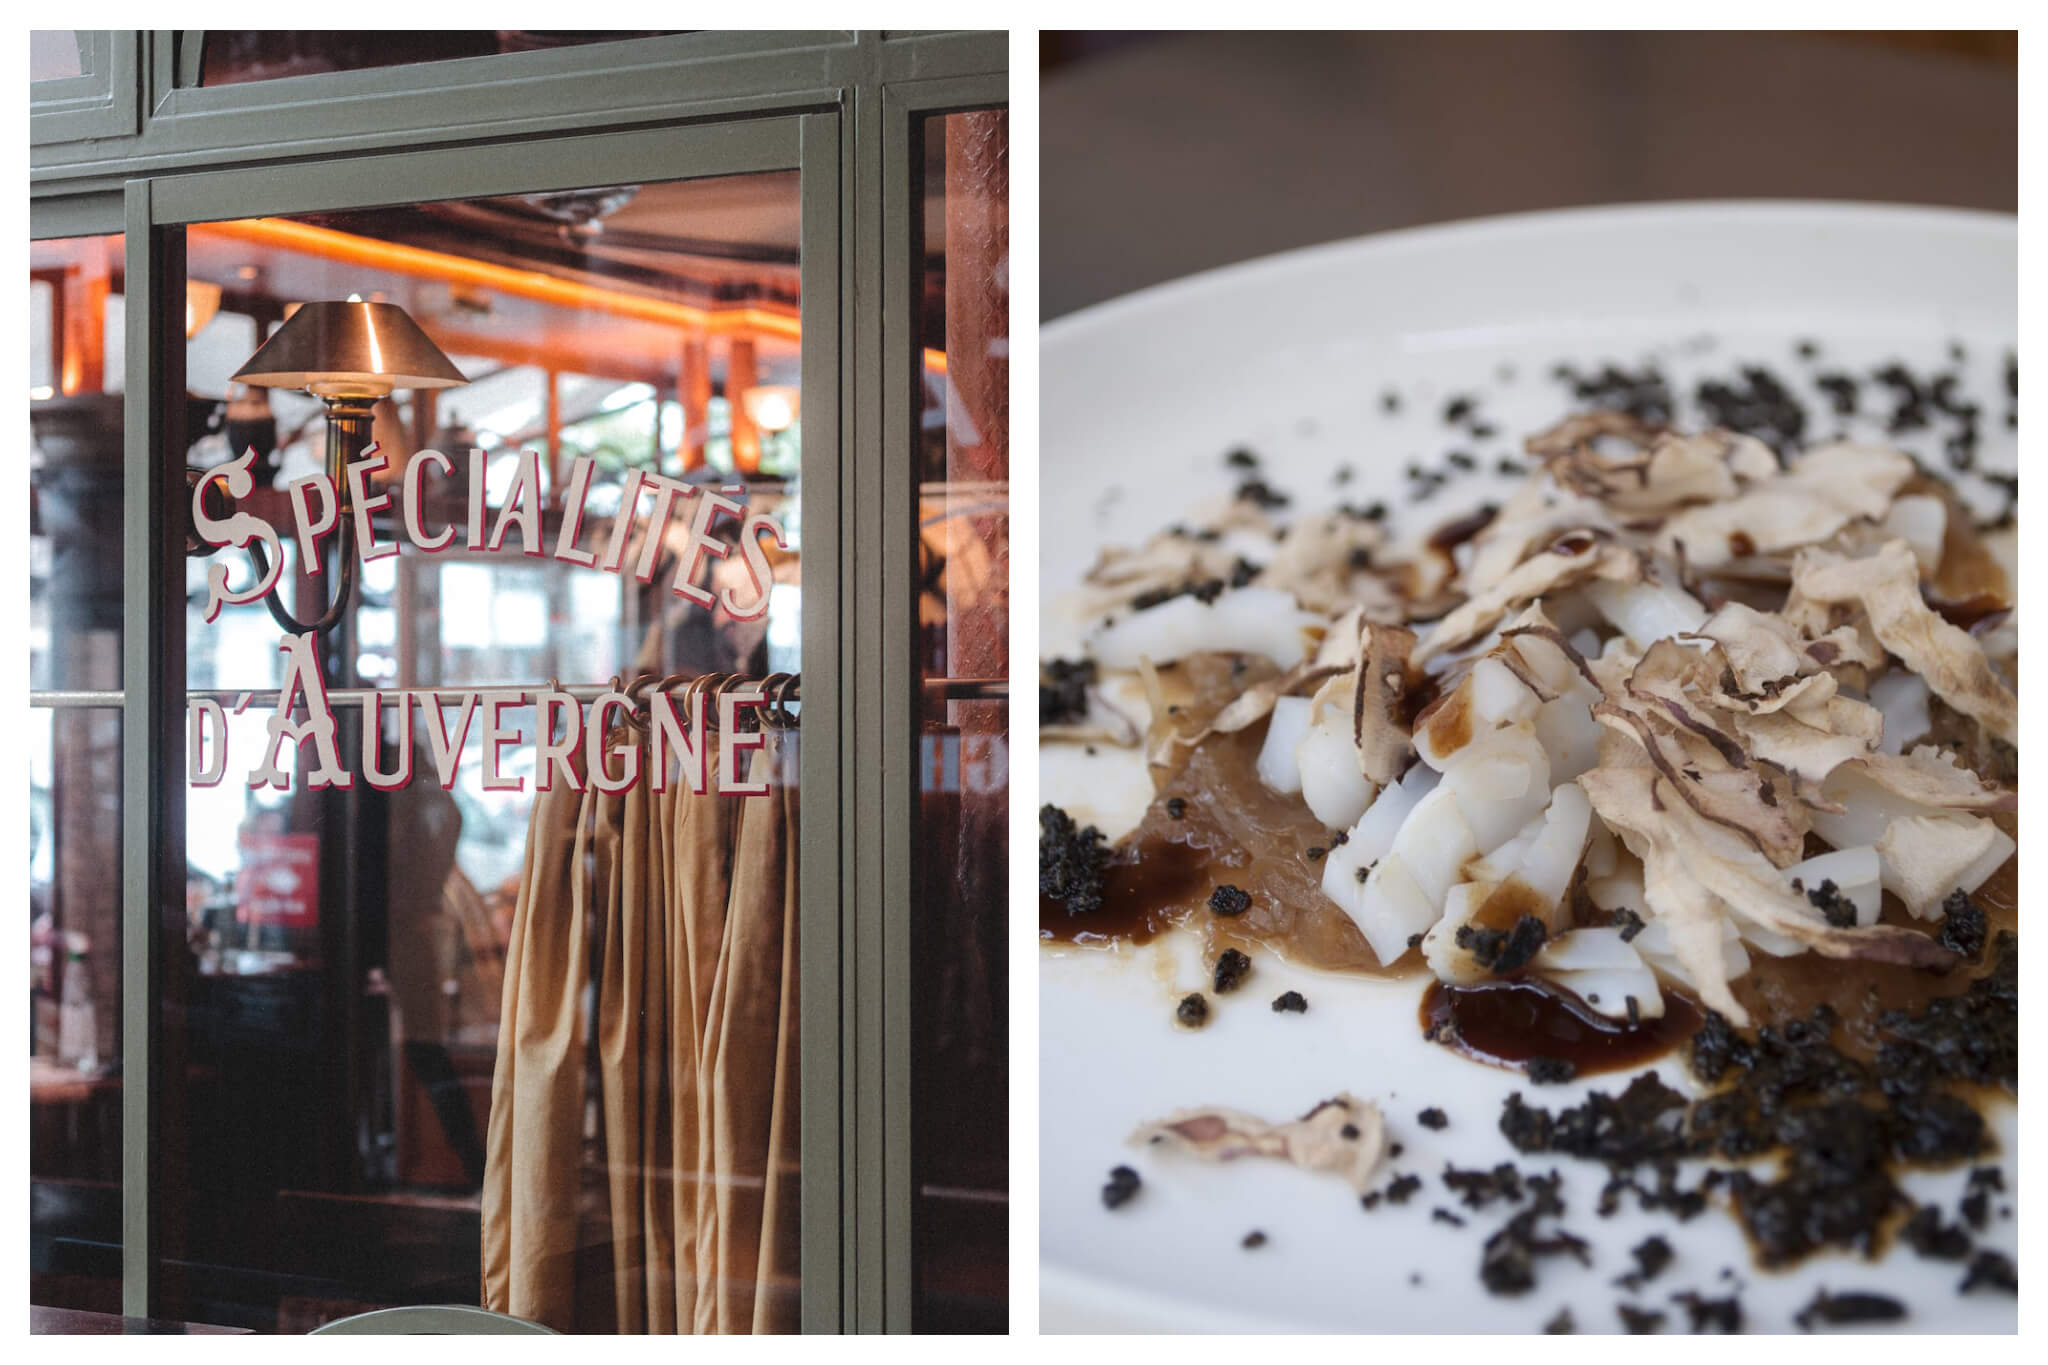 """Left: """"Spécialités d'Auvergne"""" is written in red and white paint on the glass window of a restaurant in Paris, Right: An array of mushrooms, sauces and seasonings lays on a white plate"""